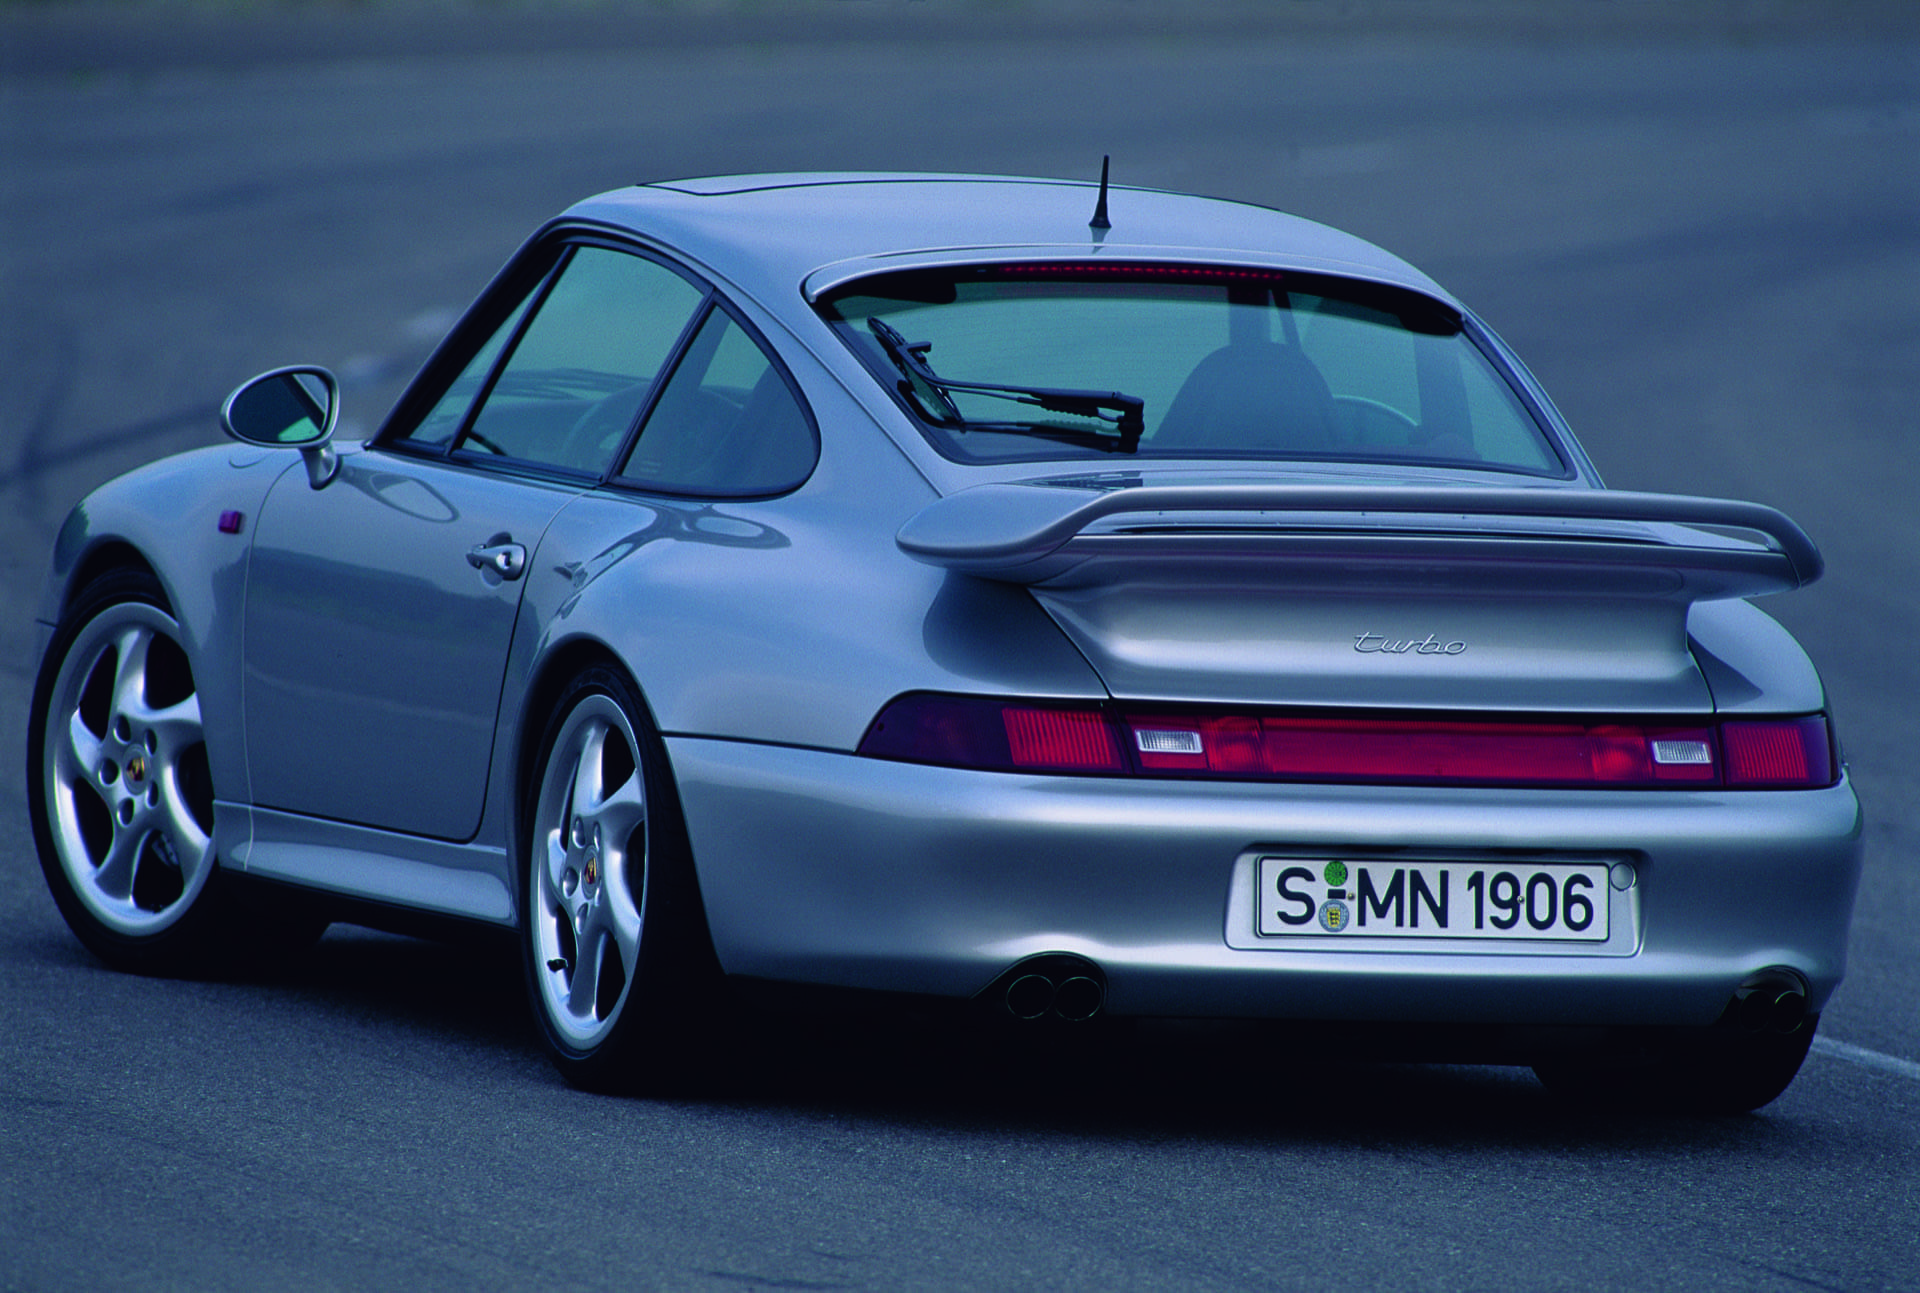 Porsche 911 993 Turbo S 3 6 Coupe 1998 2